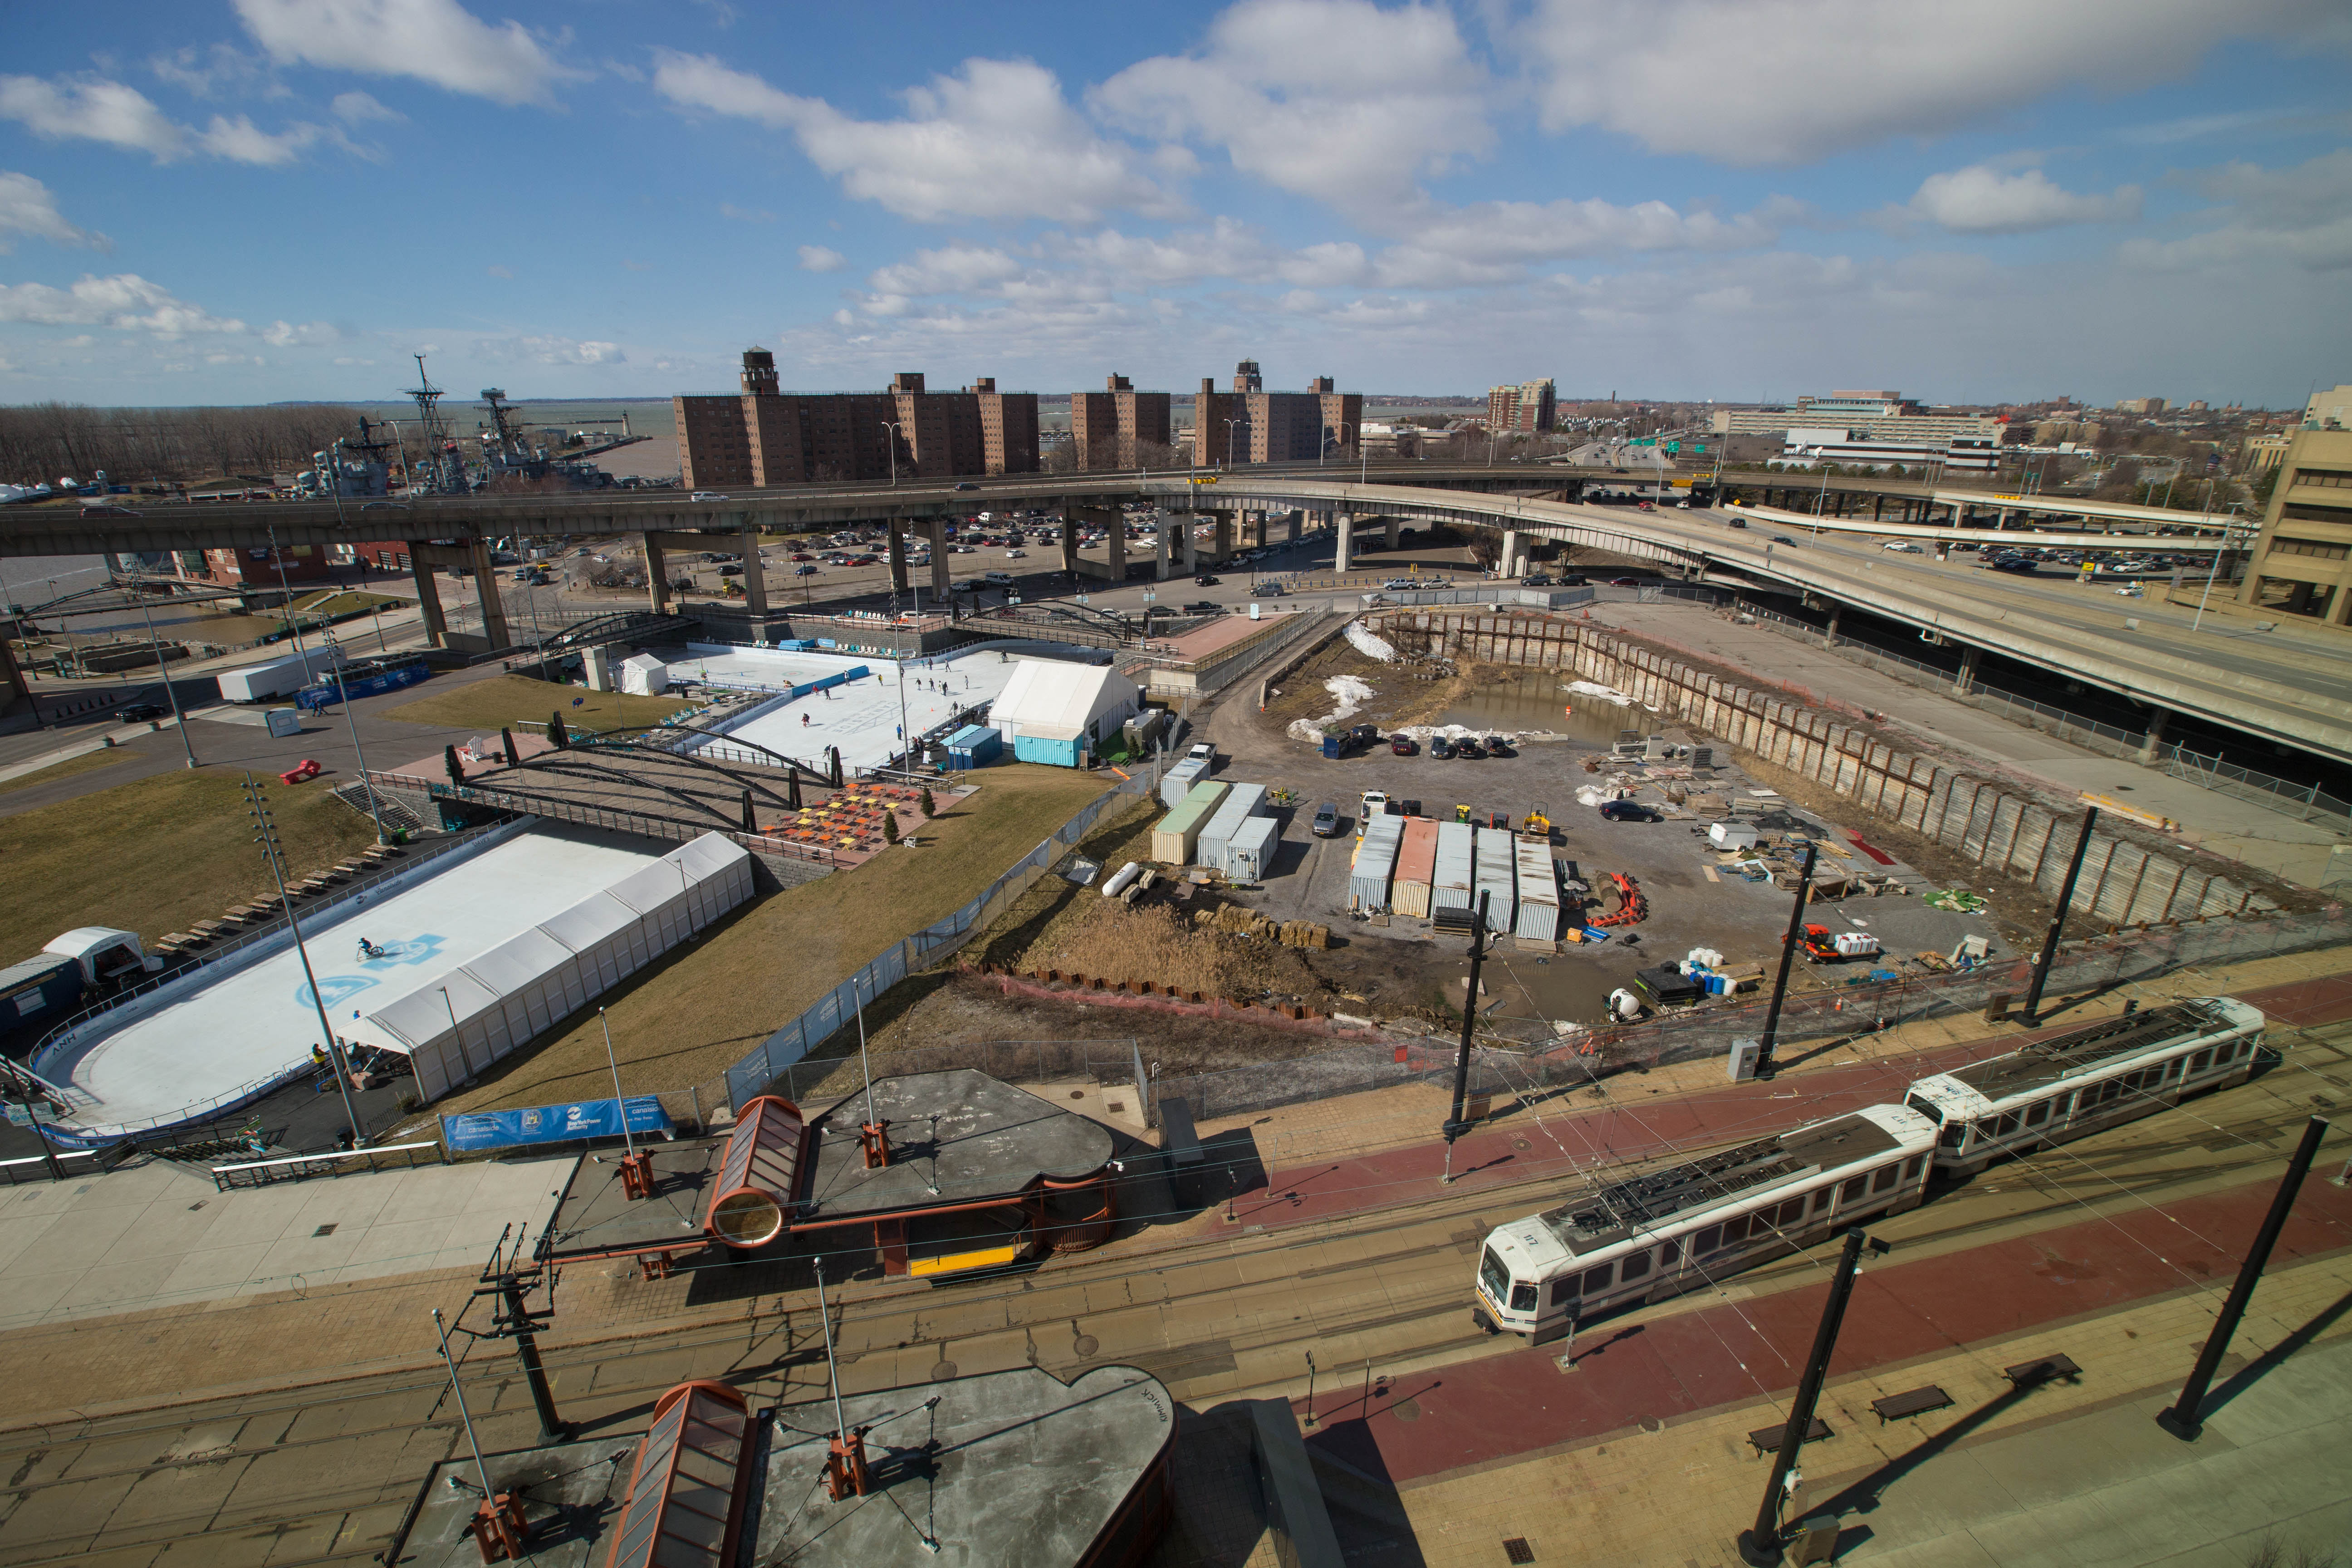 Canalside and the yet to be developed portion of the former Aud site, Sunday, Feb. 26, 2017.  (Derek Gee/Buffalo News)